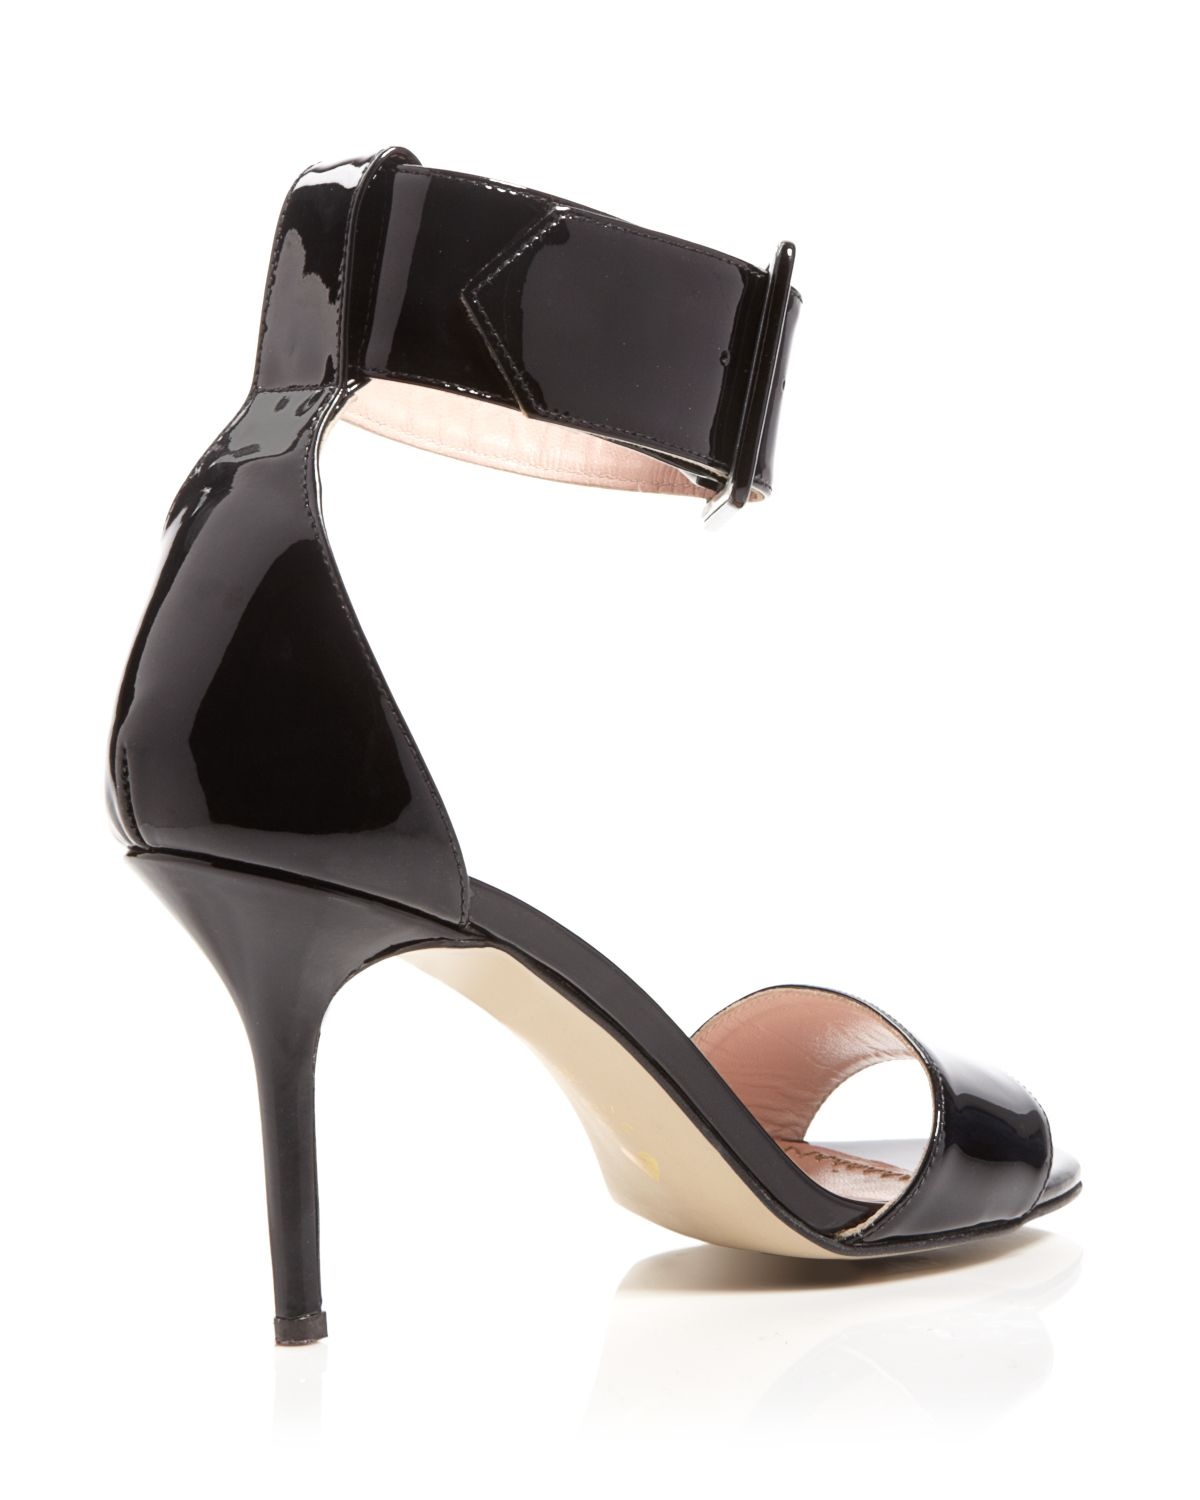 Cheap Heels With Ankle Strap